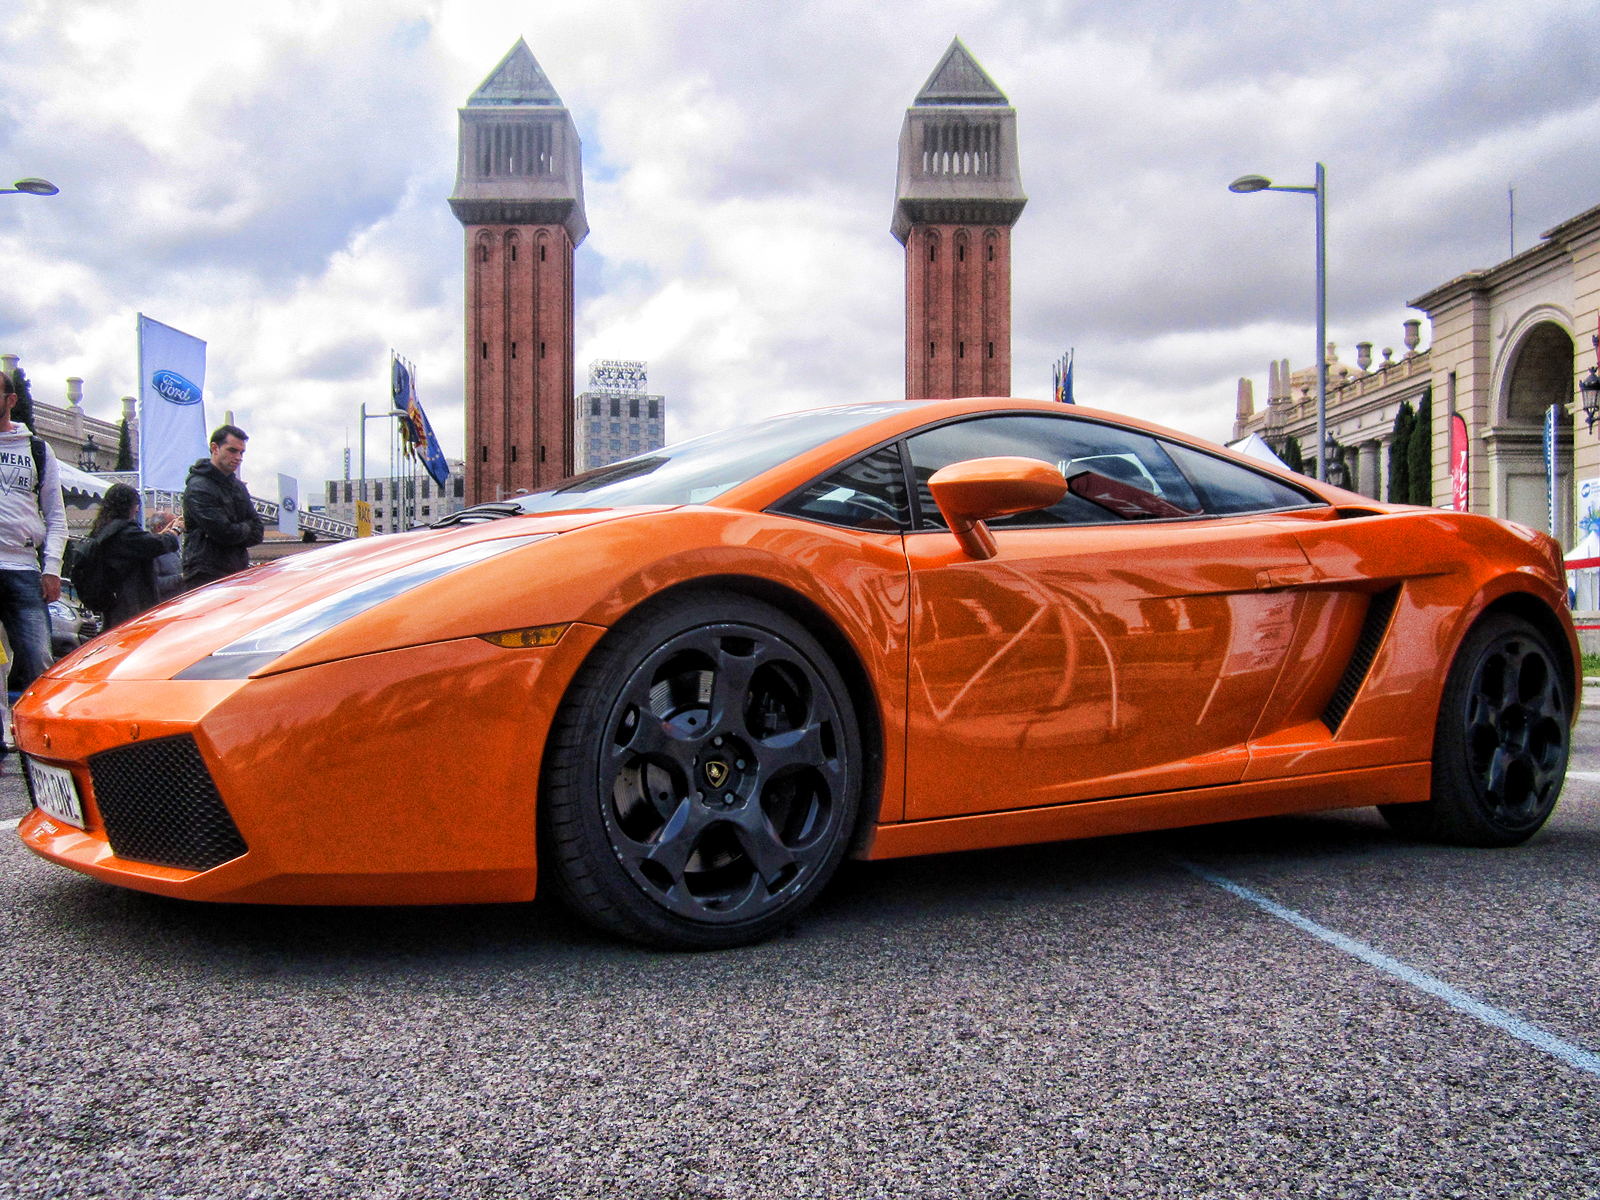 Related Images To Wallpaper Lamborghini Aventador Configurator